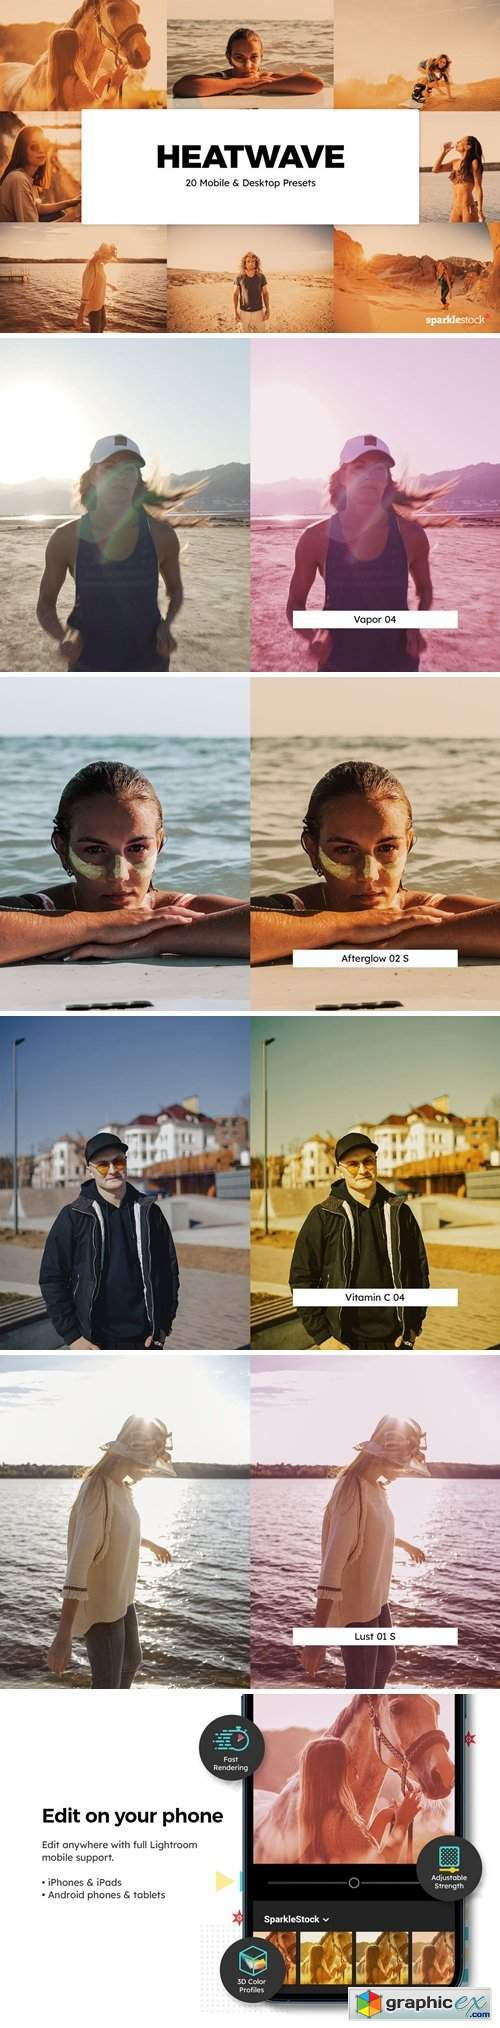 20 Heatwave Lightroom Presets & LUTs